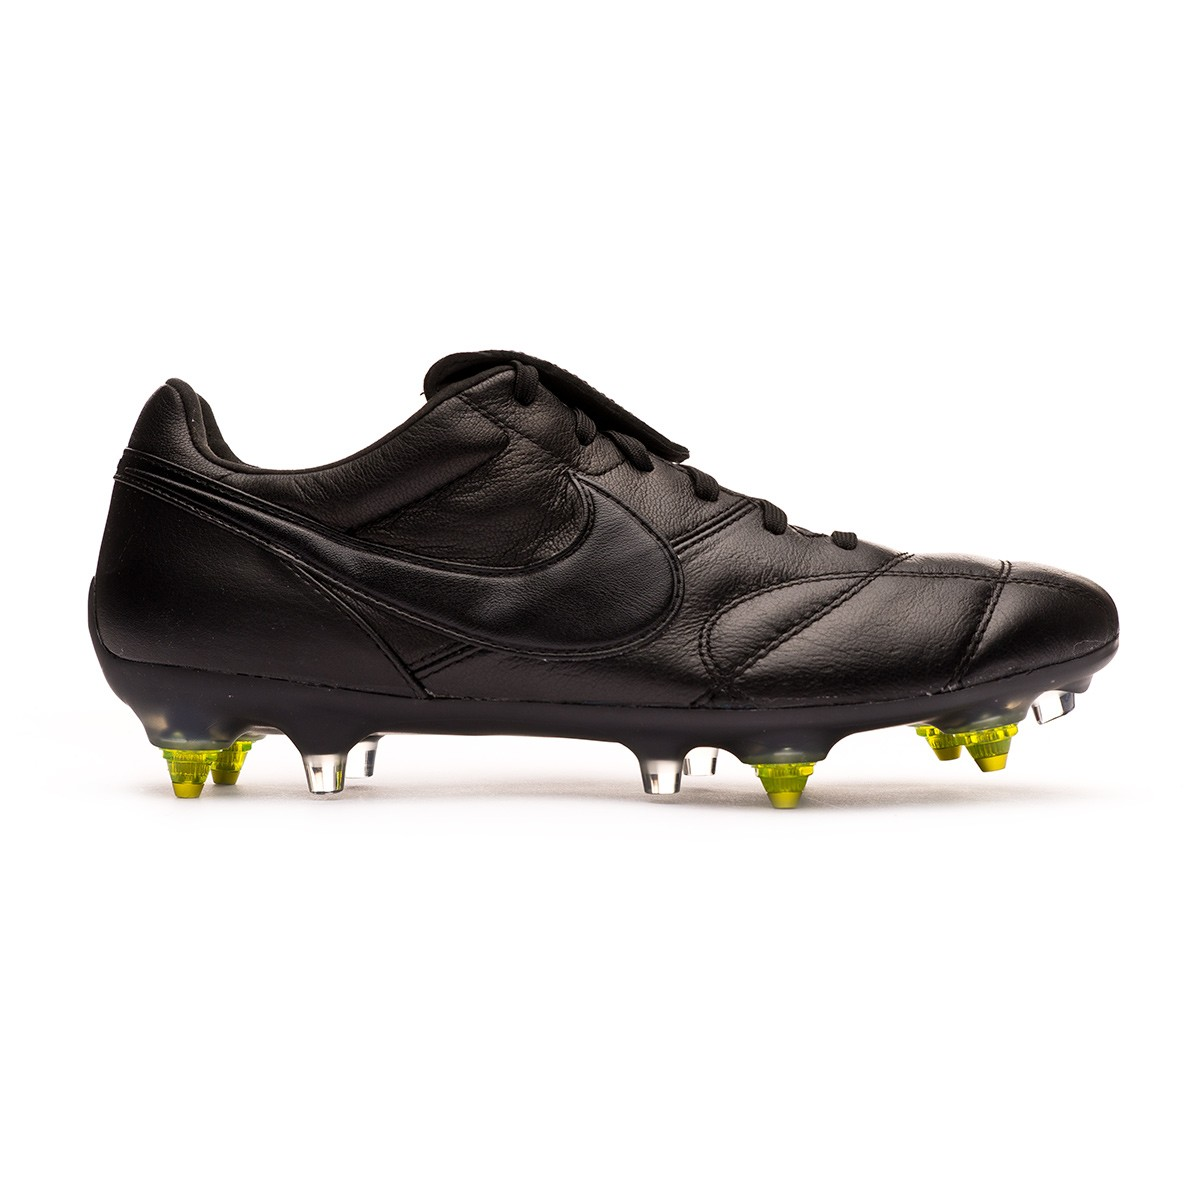 c7ac3f1aaca95 Football Boots Nike Premier II Anti-Clog Traction SG-Pro Black - Tienda de  fútbol Fútbol Emotion